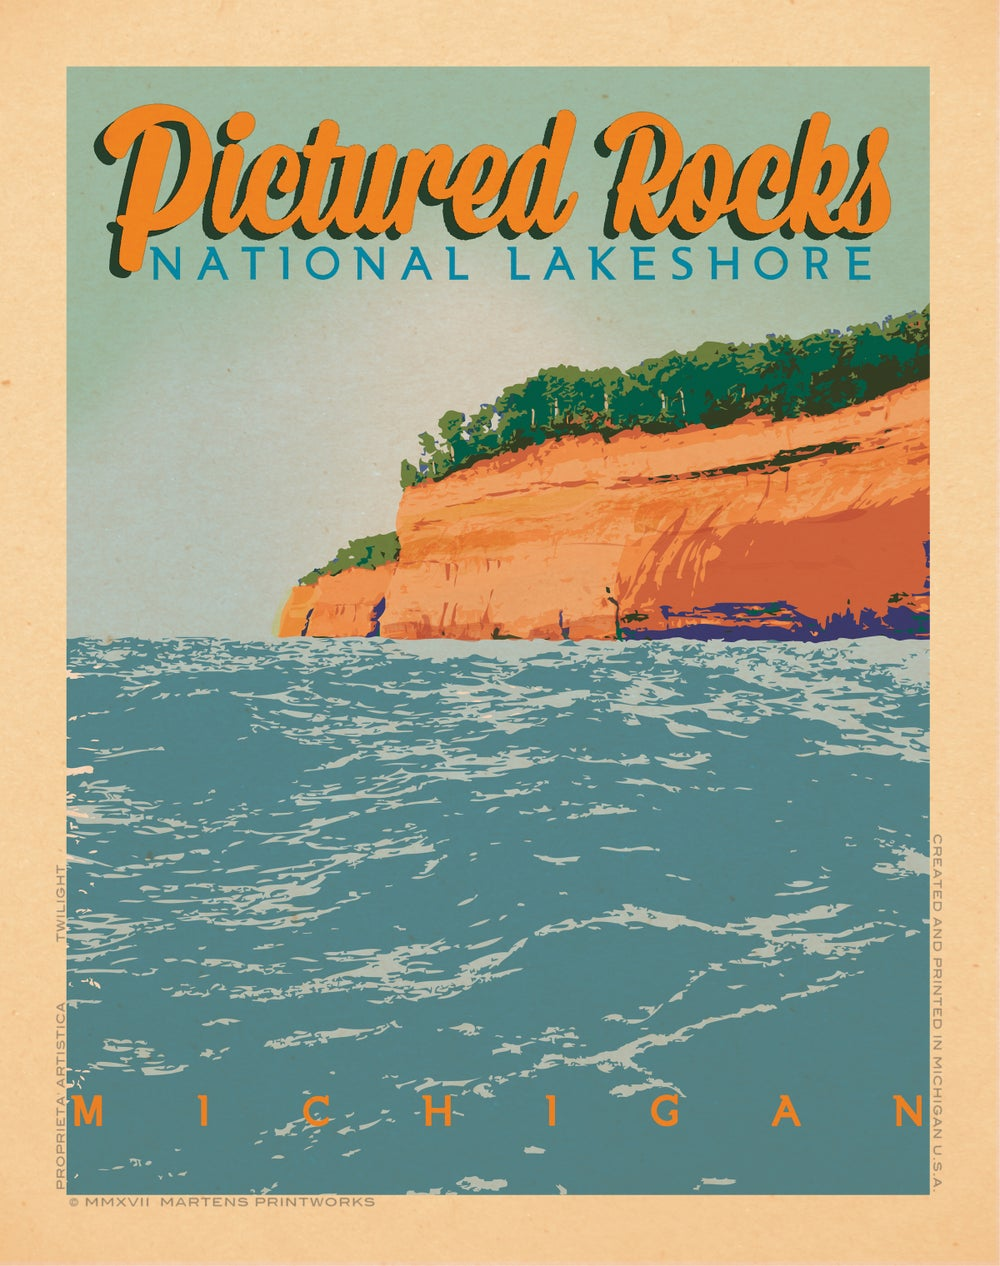 Image of Pictured Rocks in Pictured Rocks National Lake Shore 11x14 Print No. [073]